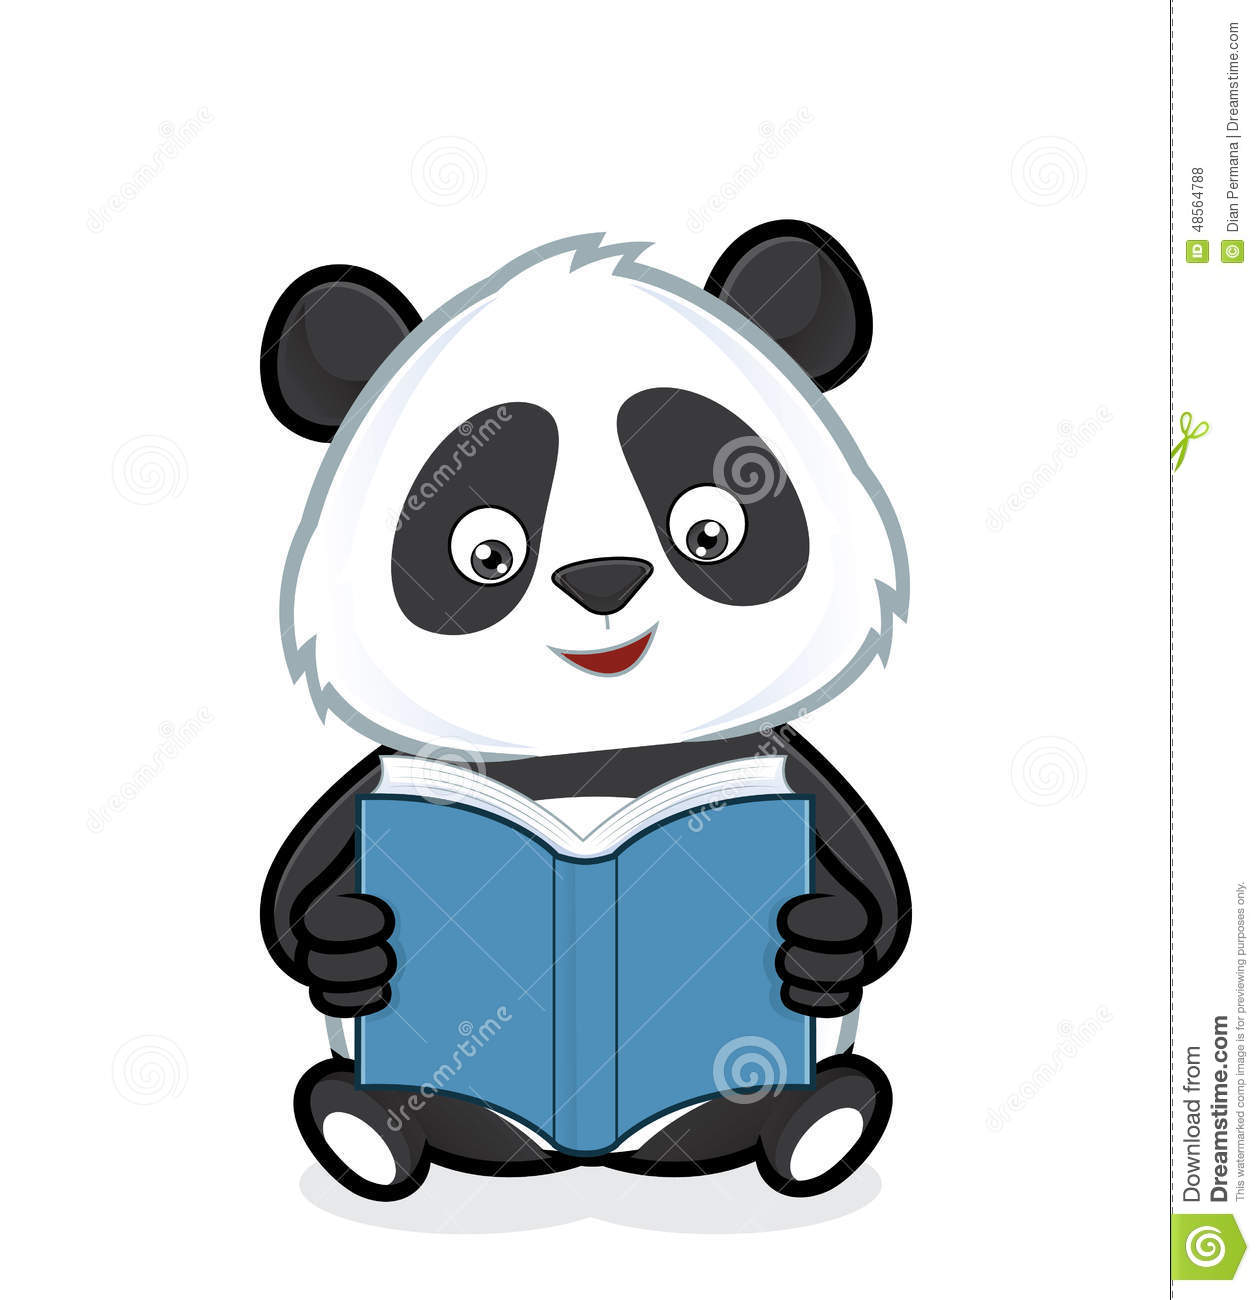 Clipart picture of a panda cartoon character reading a book.